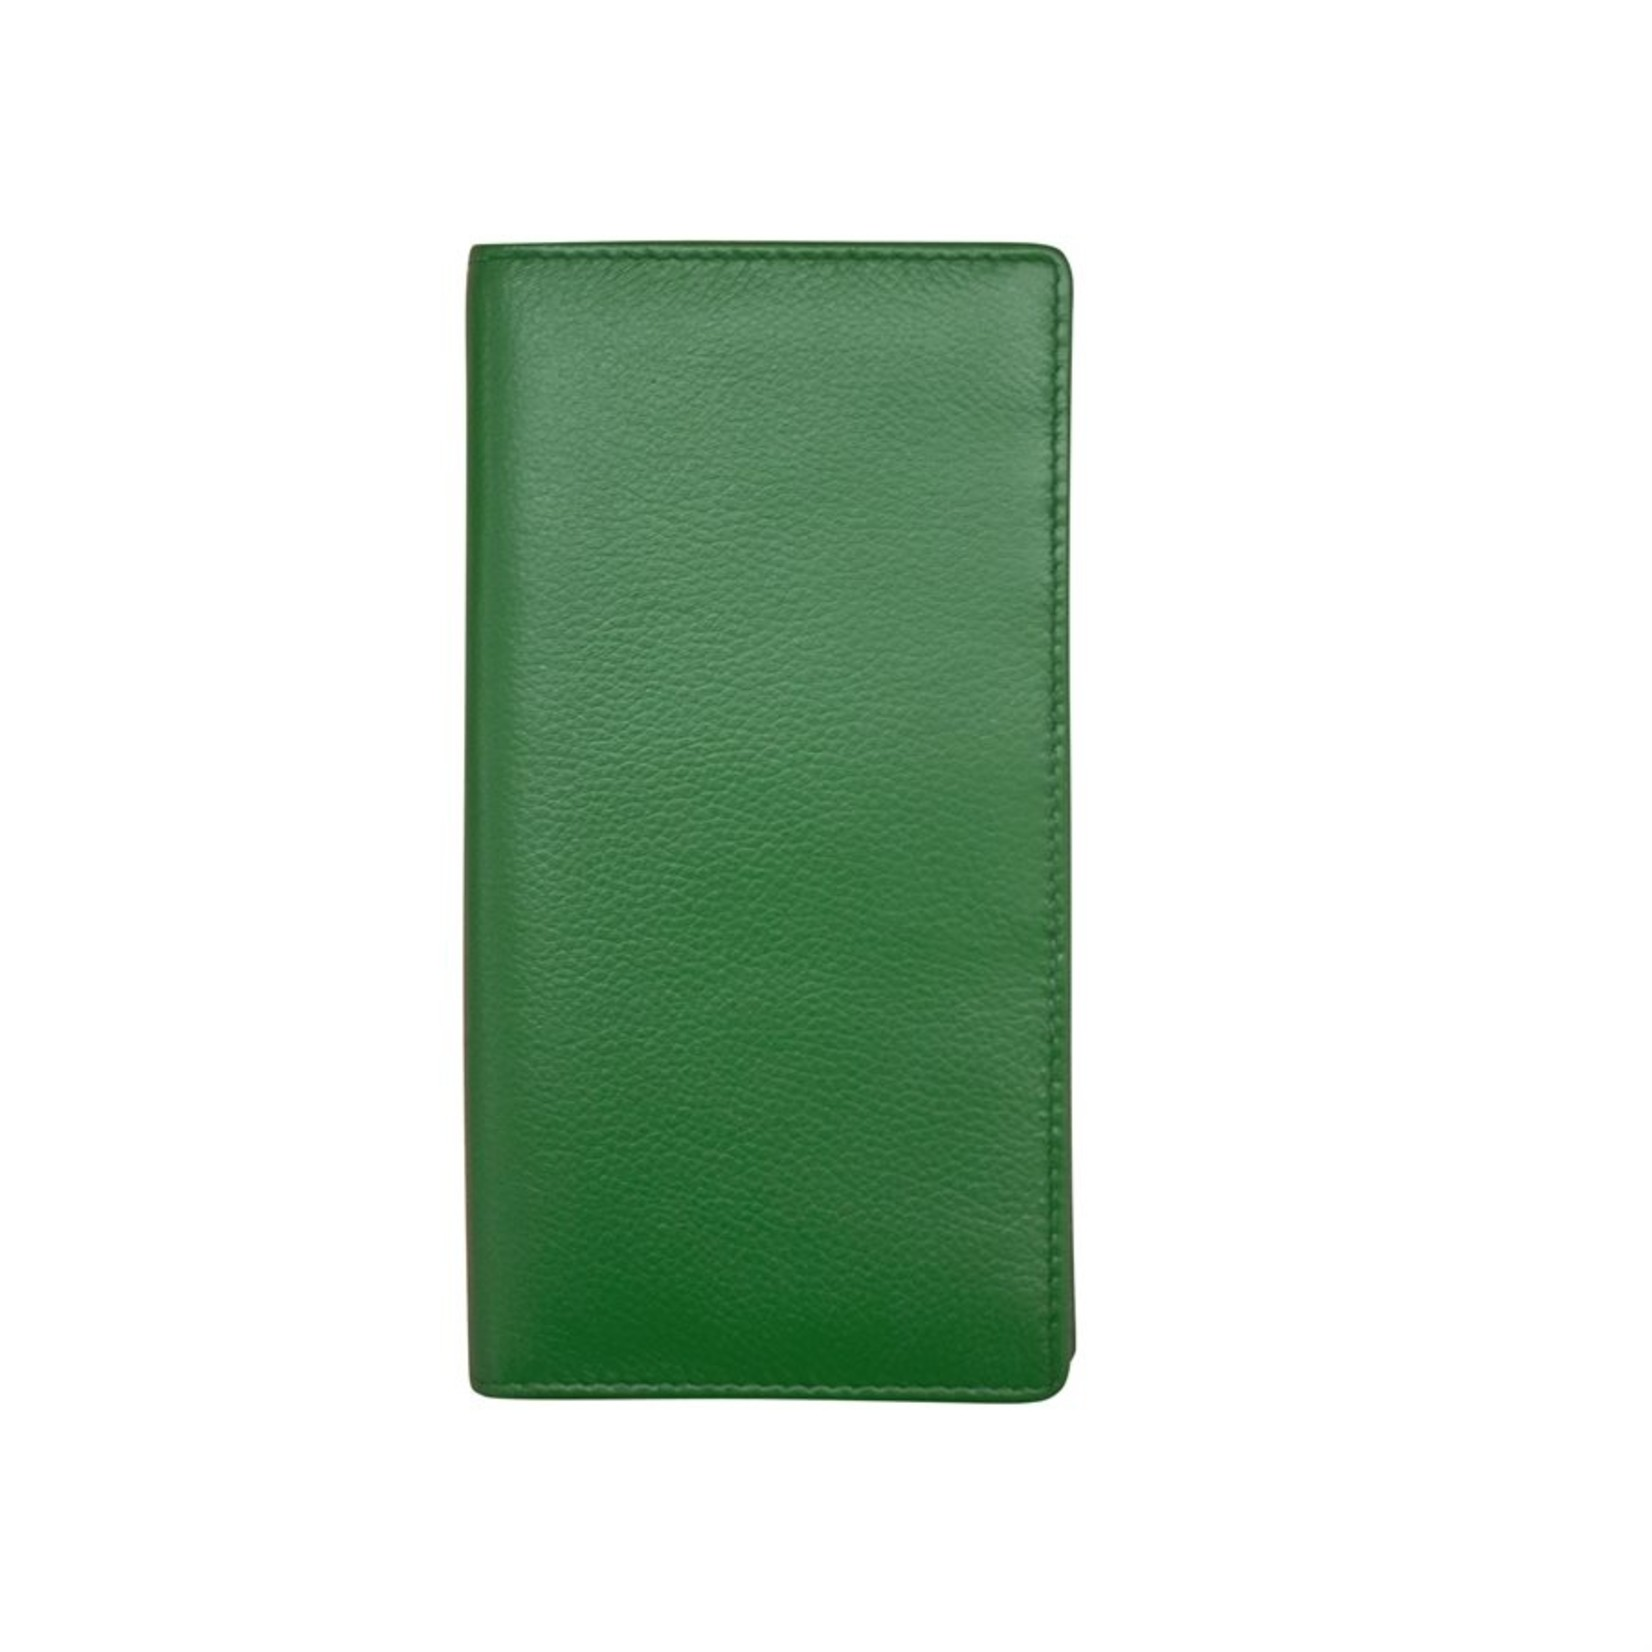 Leather Handbags and Accessories 7406 Emerald - RFID Checkbook Cover